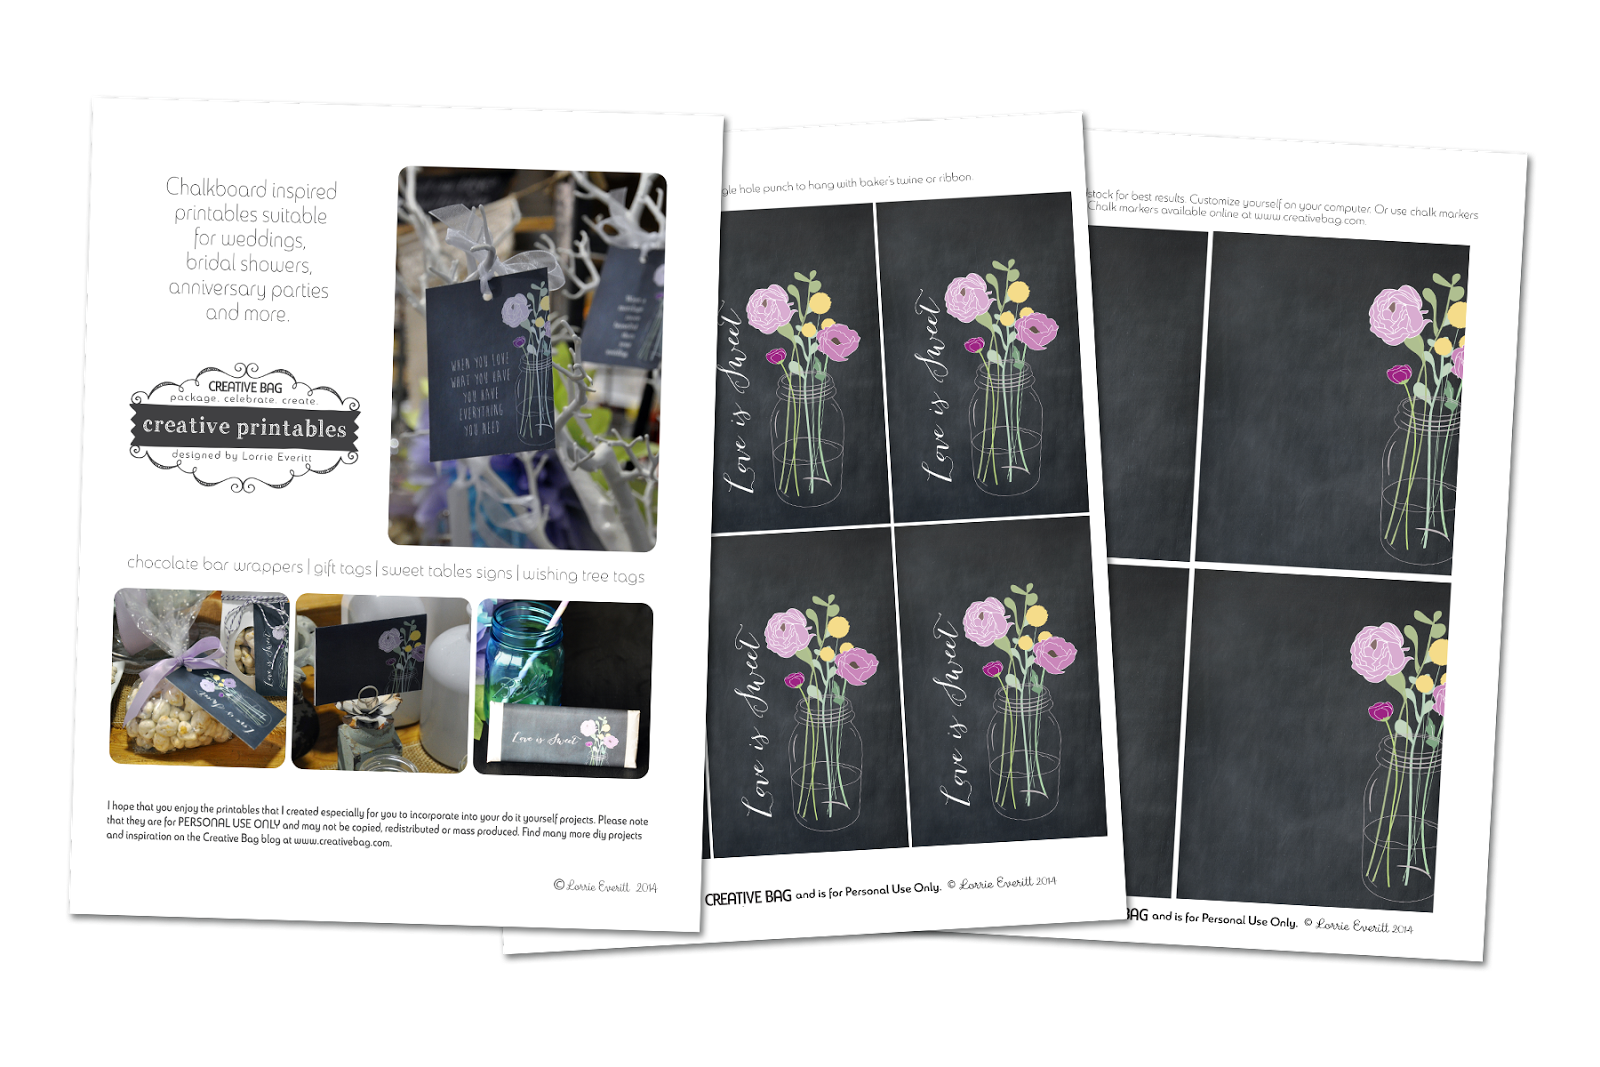 free printables for paper bows and chalkboard inspired gift tags from Lorrie Everitt